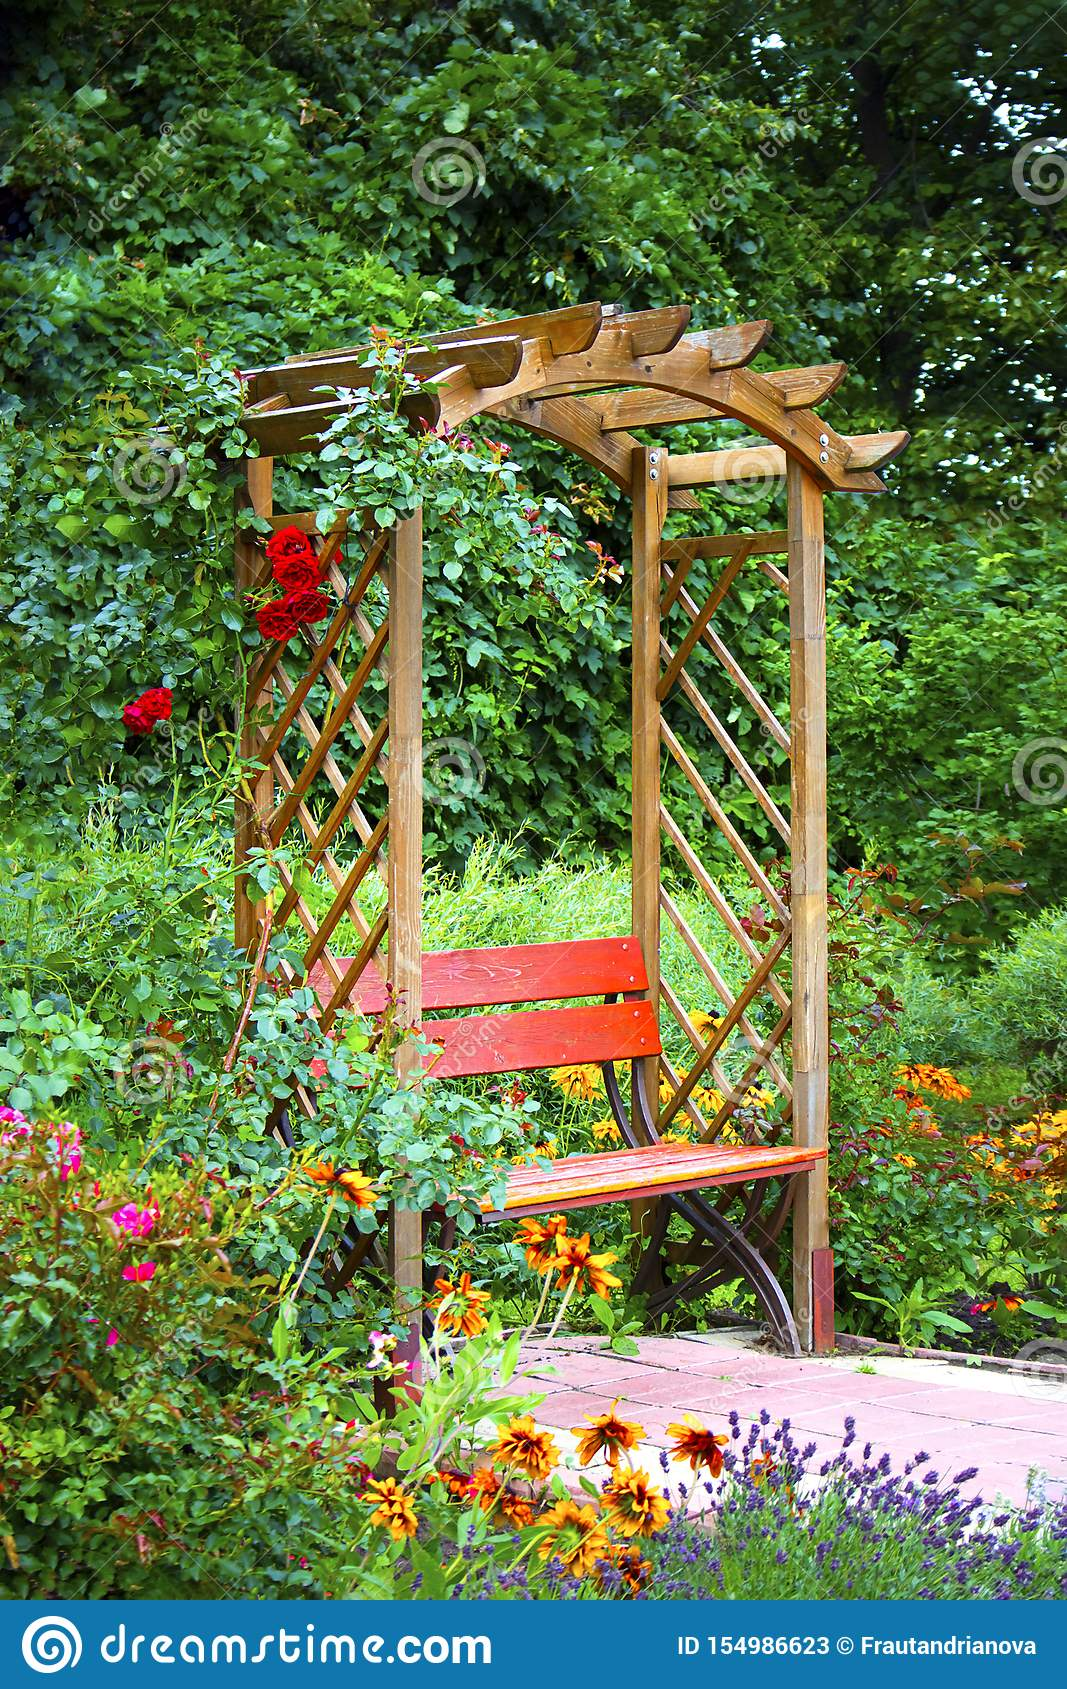 Beautiful Wooden Alkove In Green Summer Garden With Bright Flowers For Wallpaper And Design Gardening Wooden Stock Image Image Of Green Natural 154986623